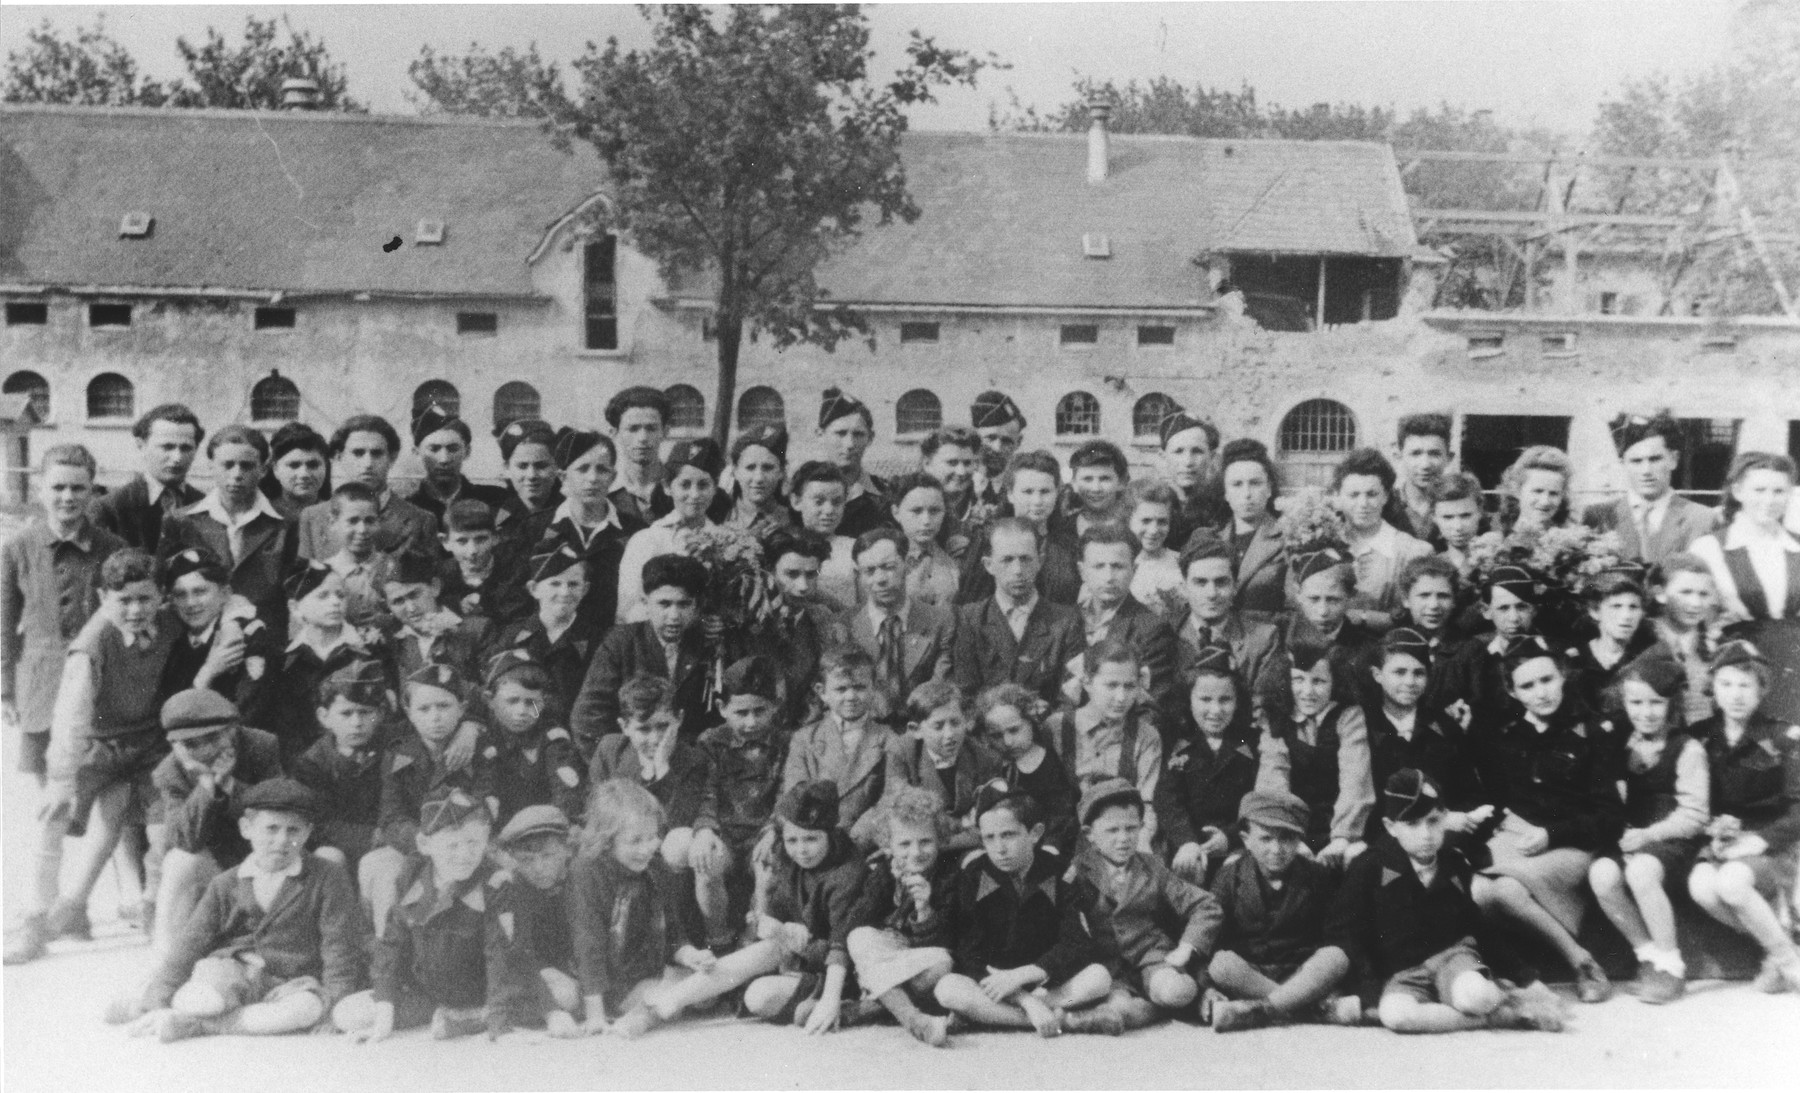 Group portrait of students in the Ulm displaced persons camp in front of their new school that is under construction.  Among those pictured are Regina Yablonska, Ida Wullach, Lila Rajs and Ruzia Rosen.